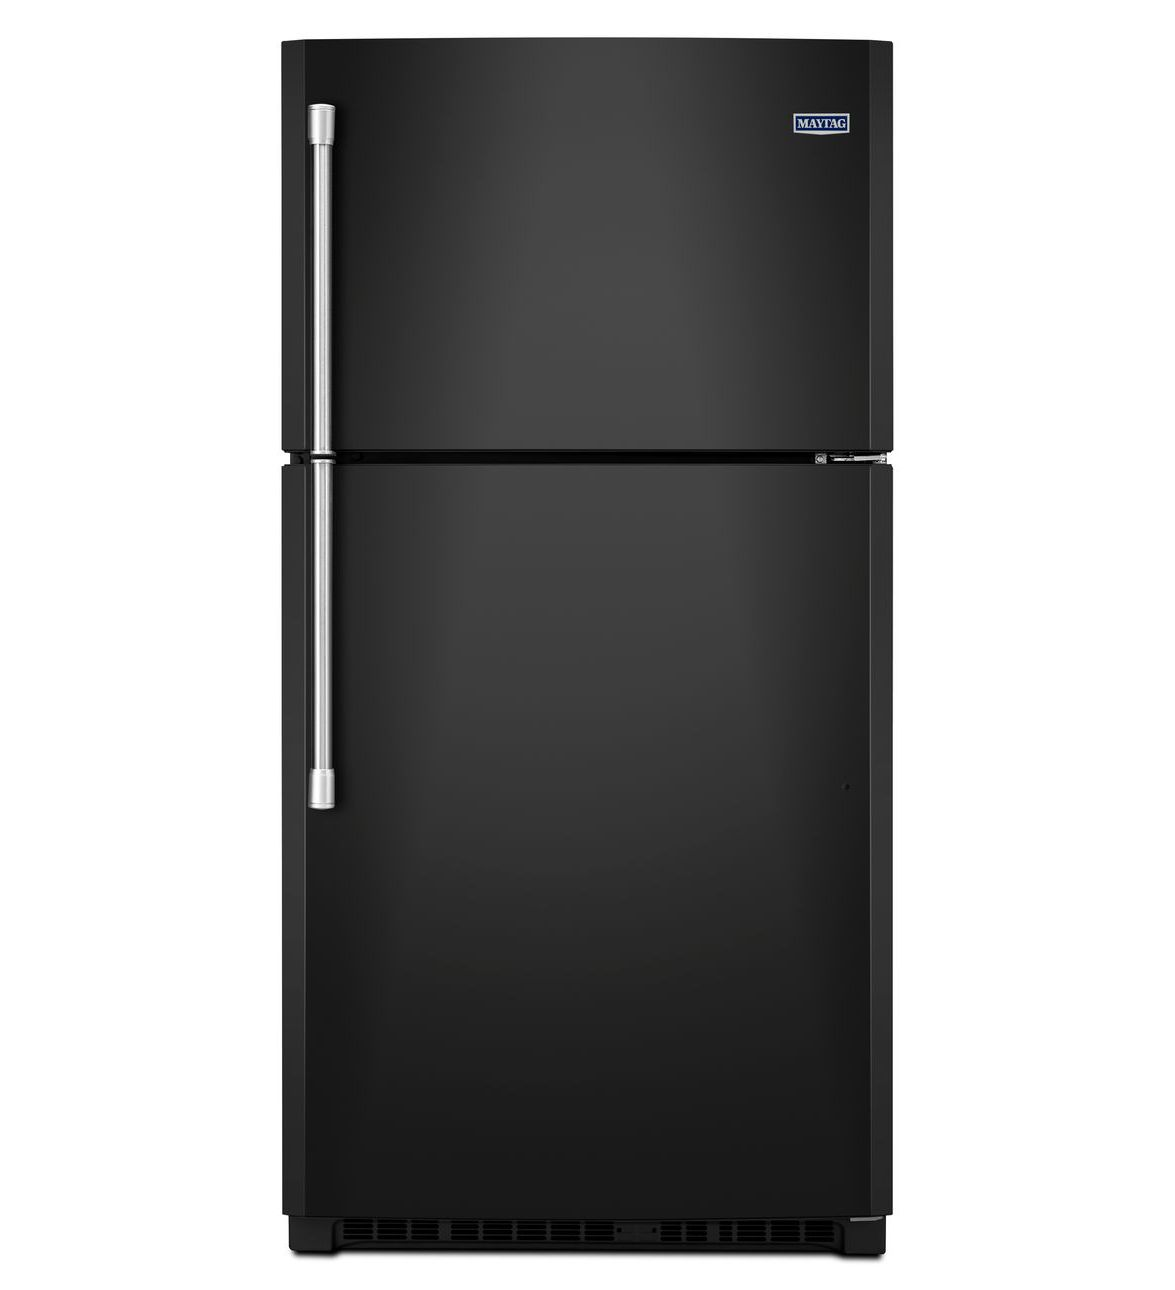 Maytag Top Freezer Refrigerator Review